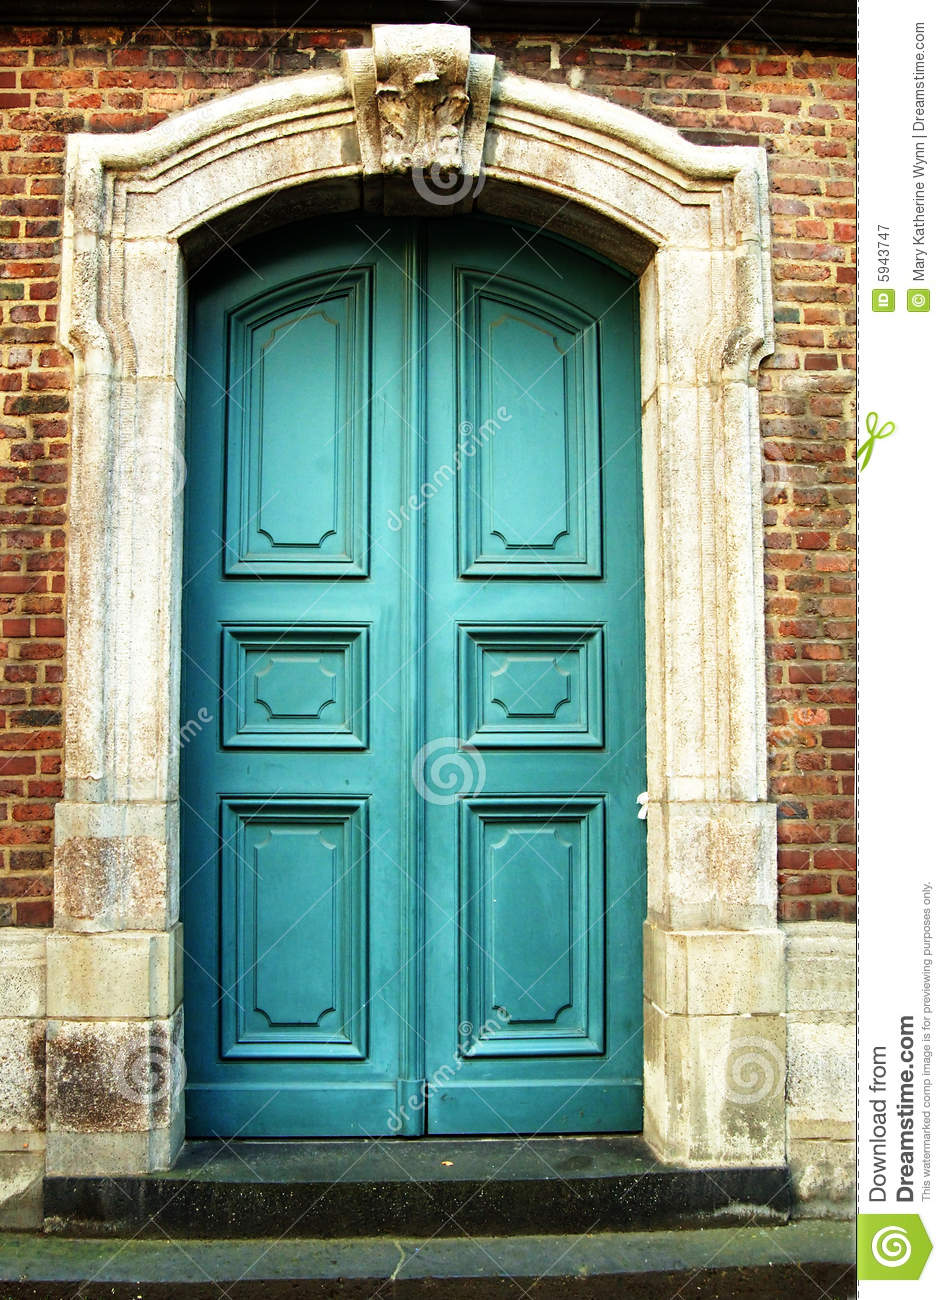 Details Of Old Doorway Stock Image  Image Of Colourful